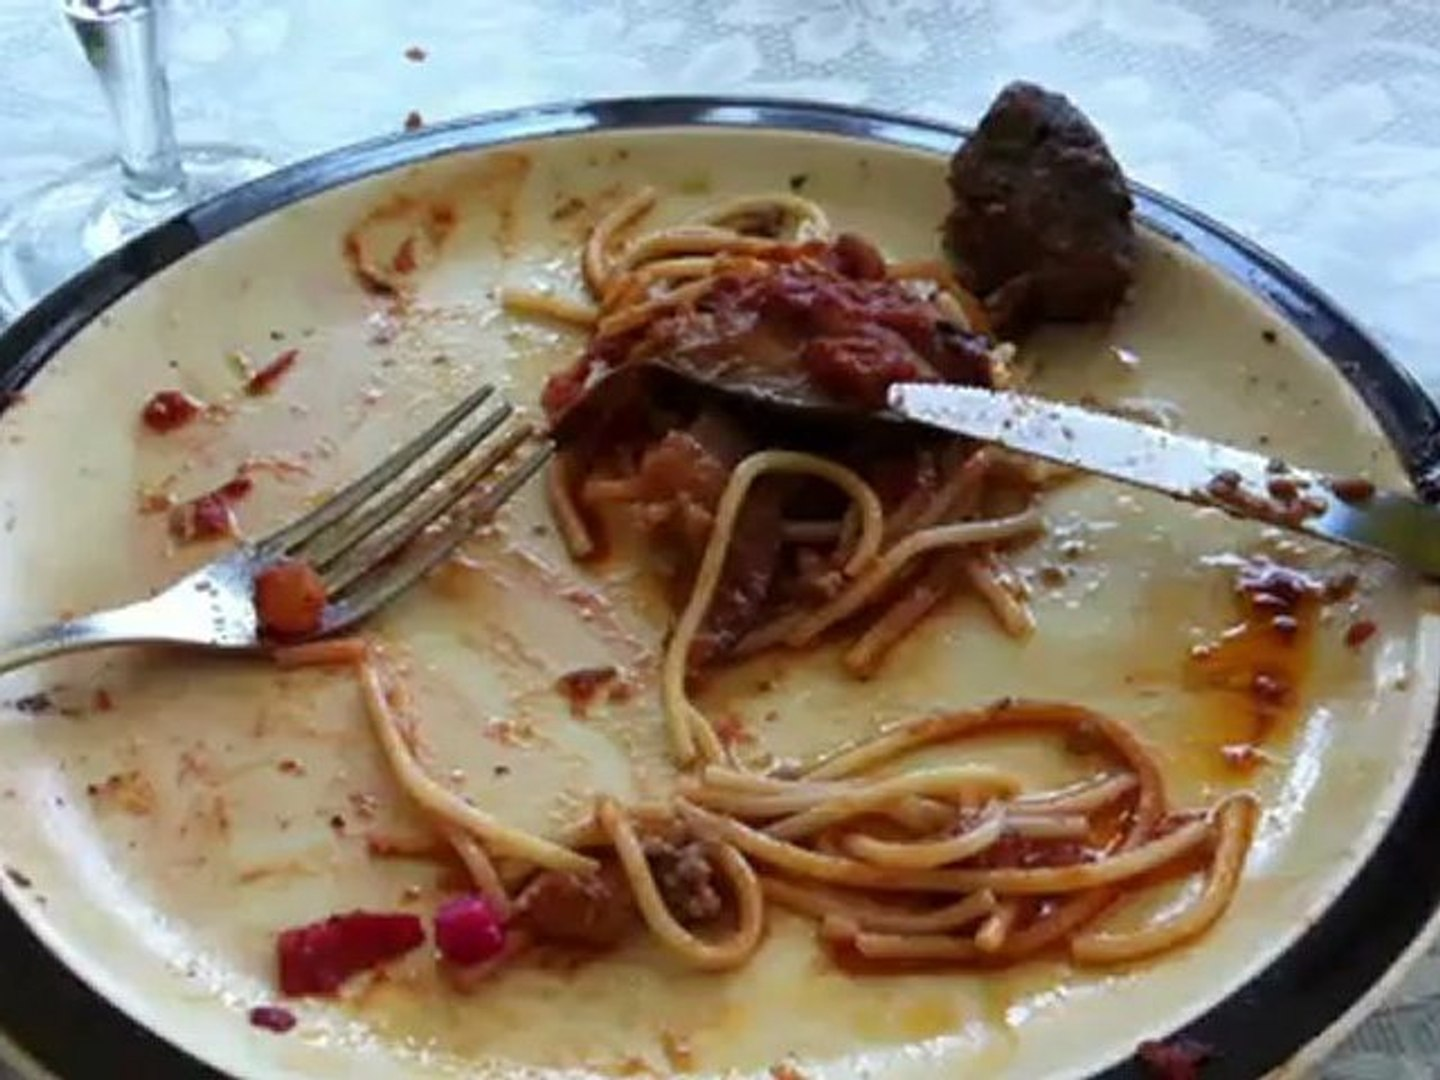 Spaghetti with eggplant salad, red beets and red wine